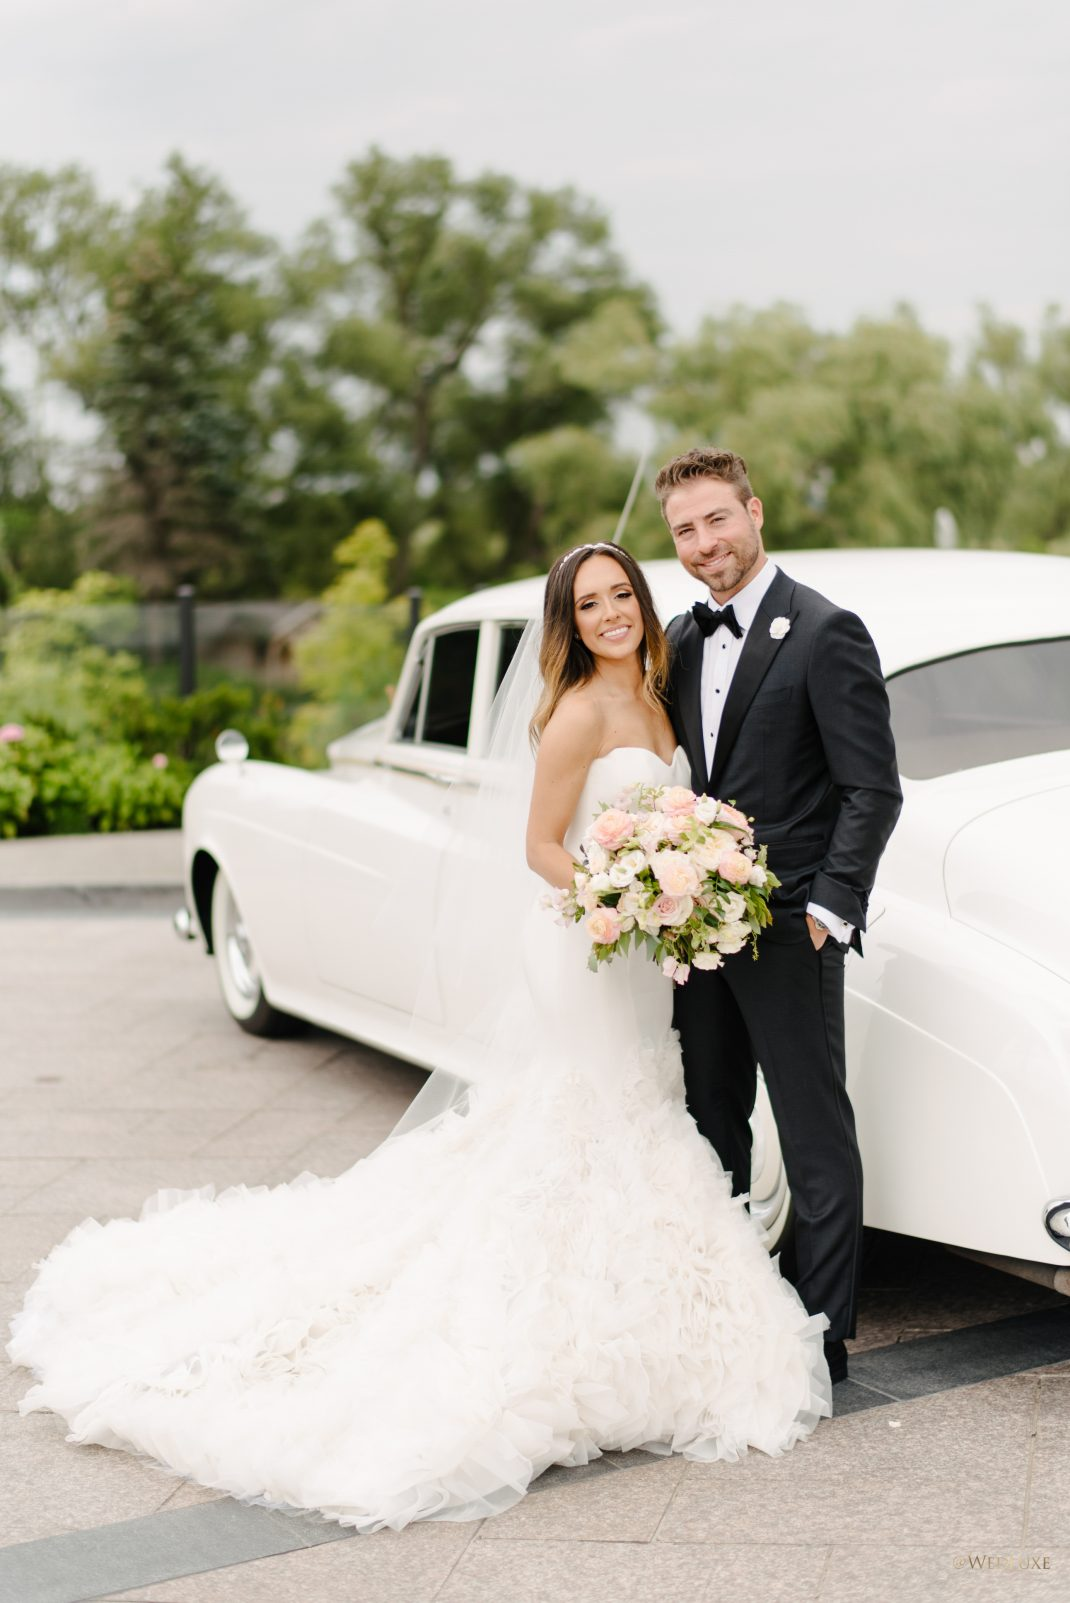 Happy Newlyweds outside with limo